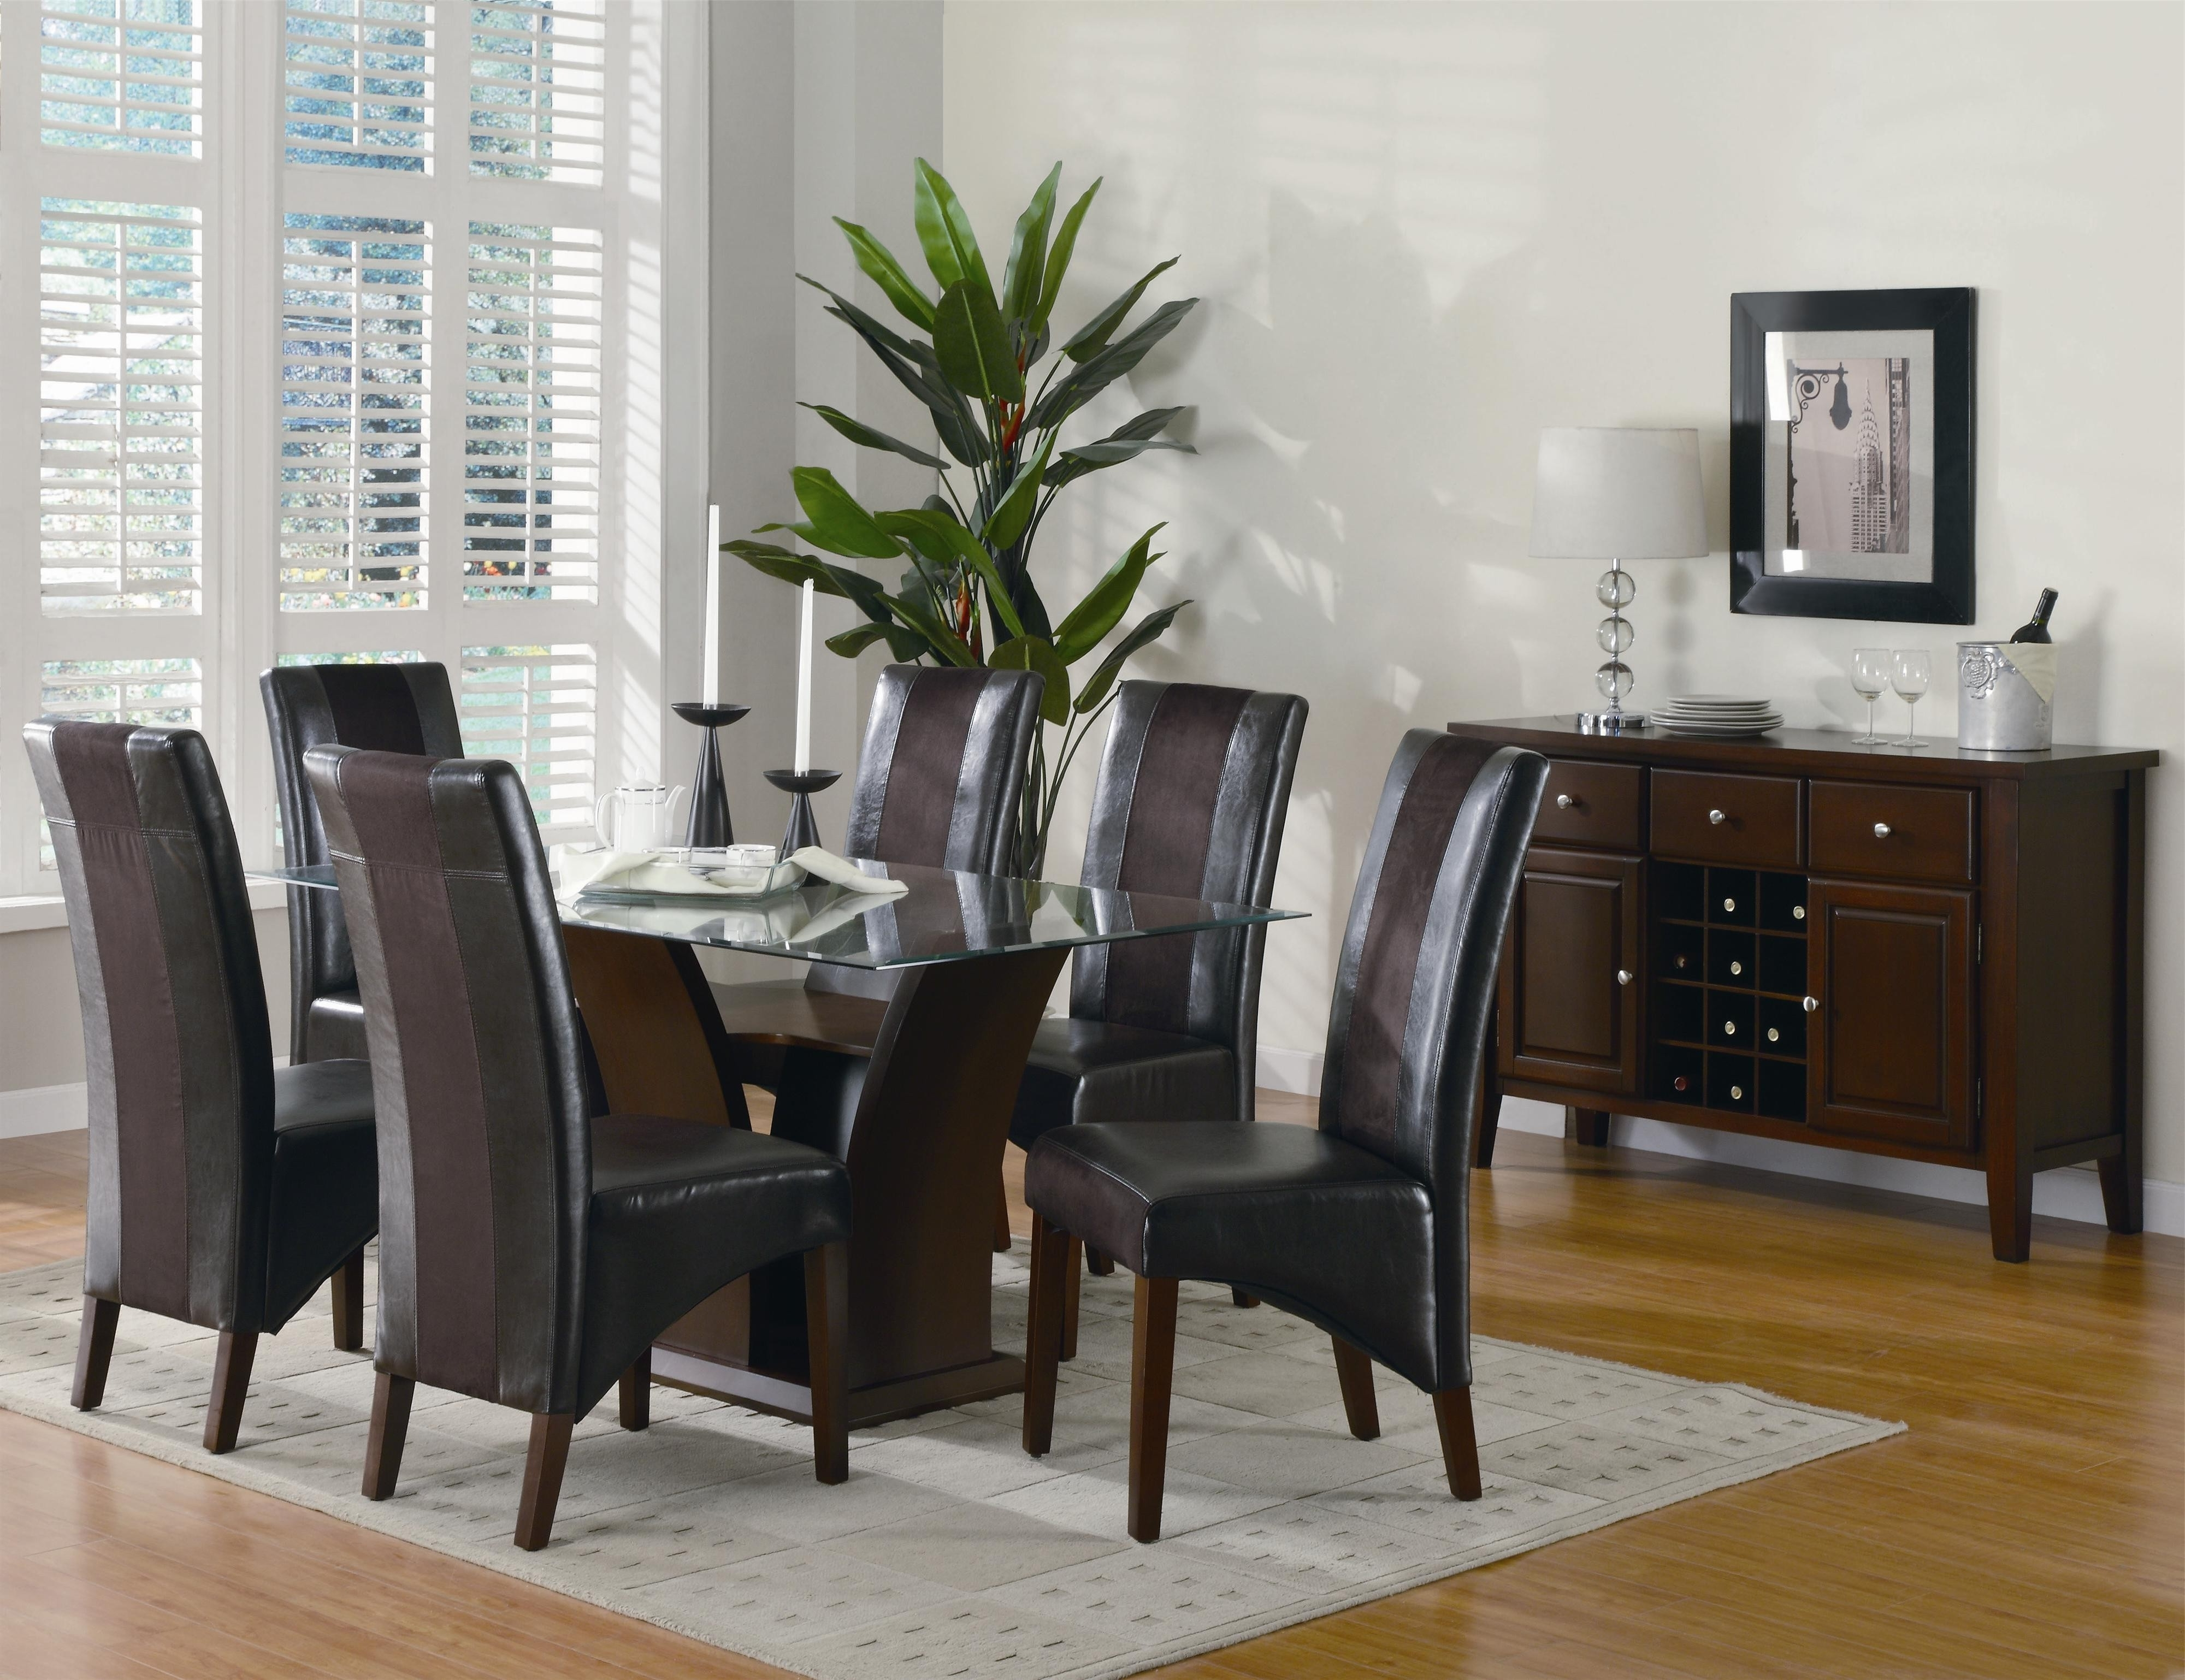 Preferred Glass Dining Tables Sets For Dining Room (View 18 of 25)